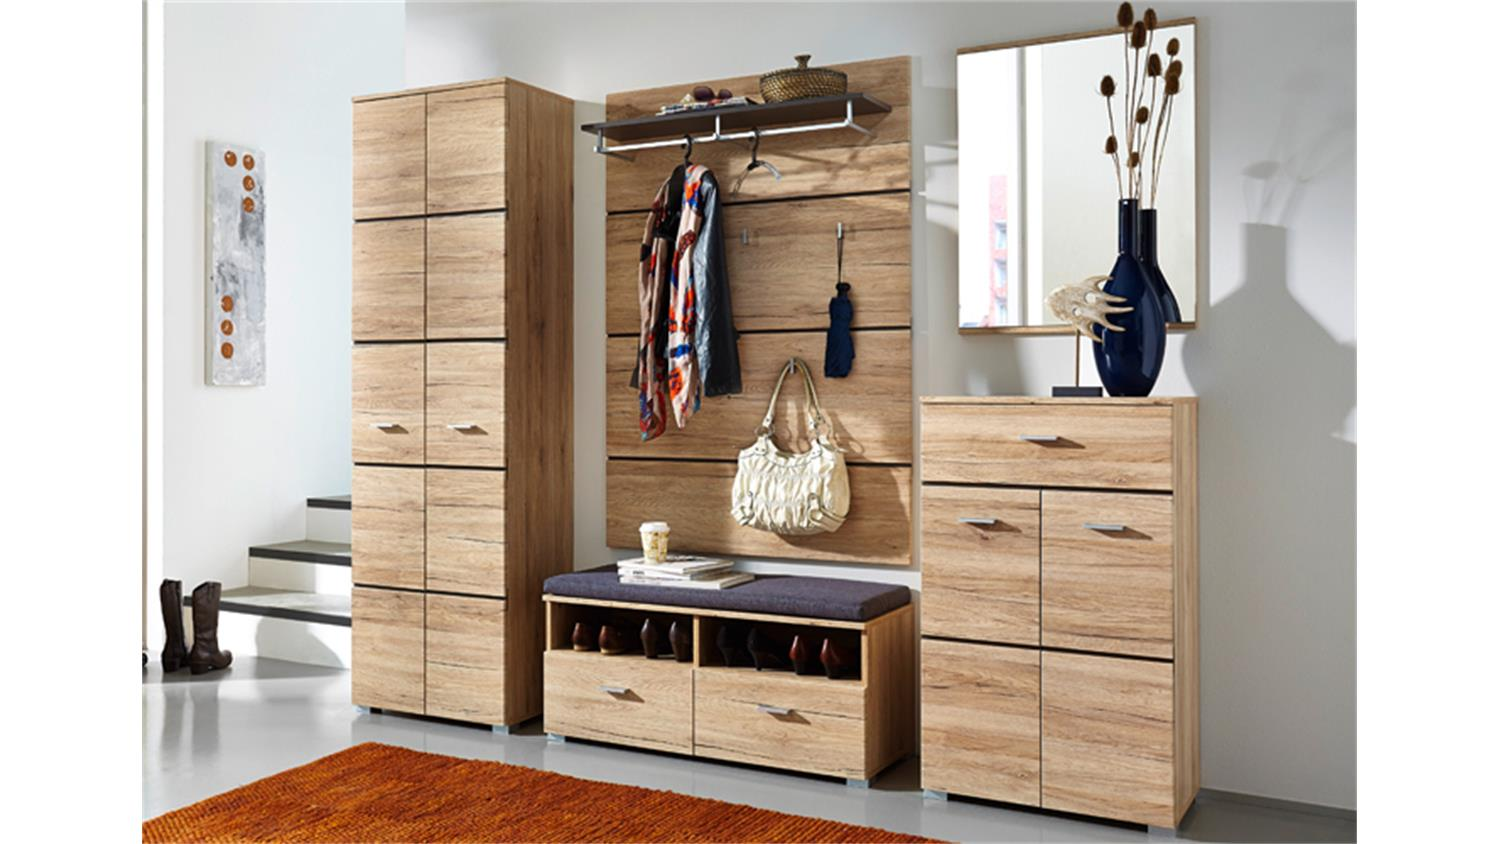 garderobe kombination fresh san remo eiche hell. Black Bedroom Furniture Sets. Home Design Ideas